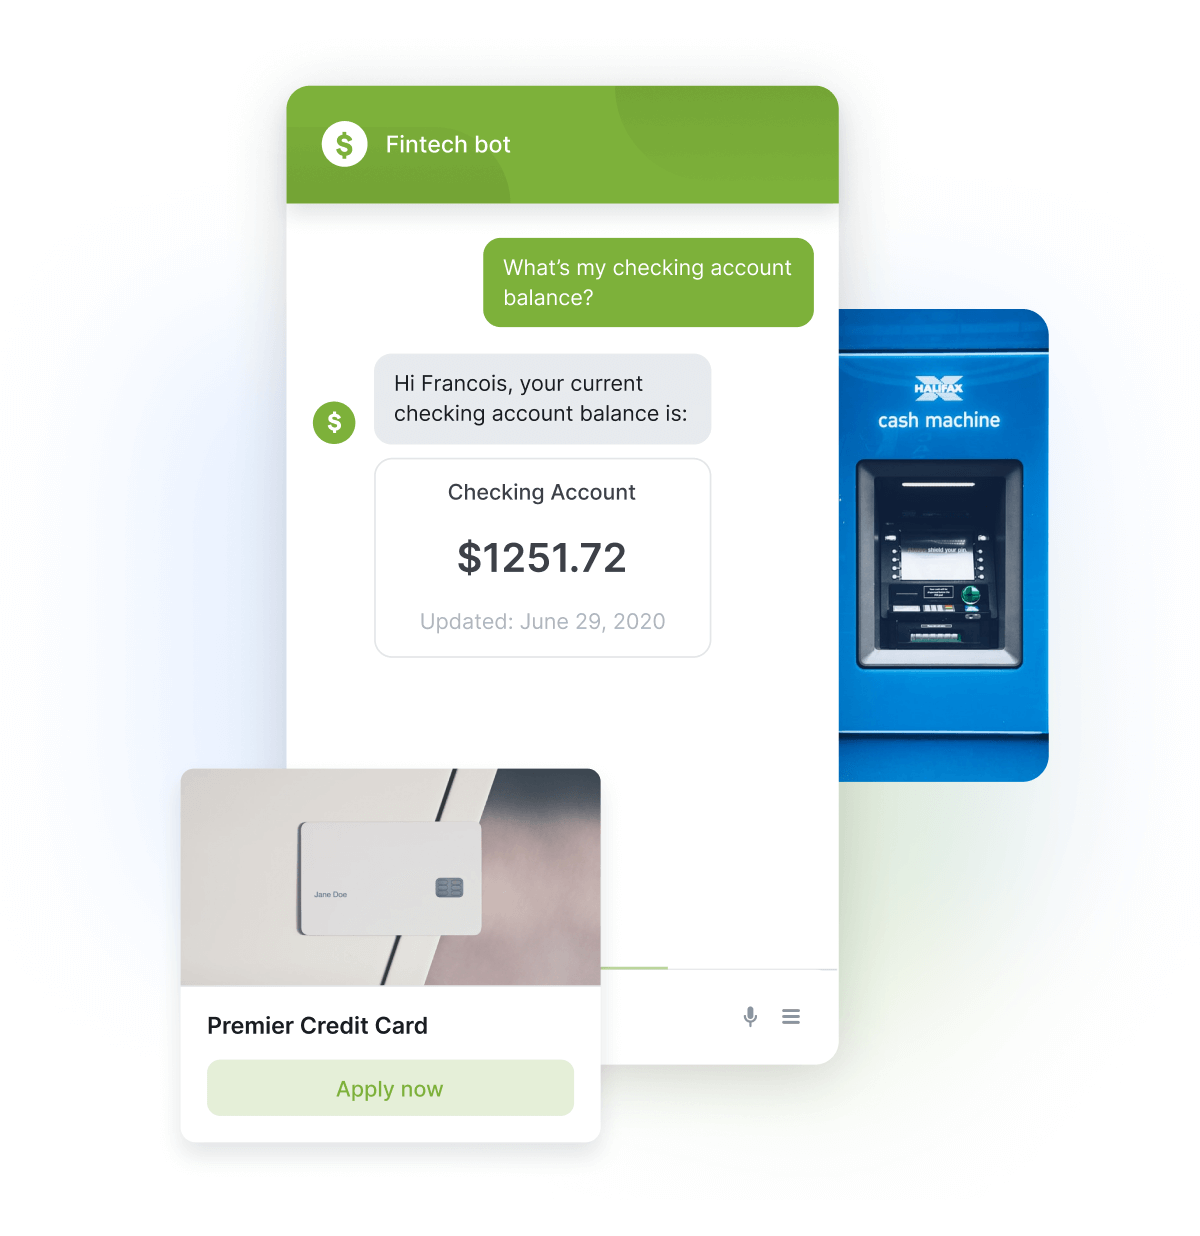 Credit Card Application Chat, a Bot Helping a Customer Find Their Checking Account Balance, and an ATM